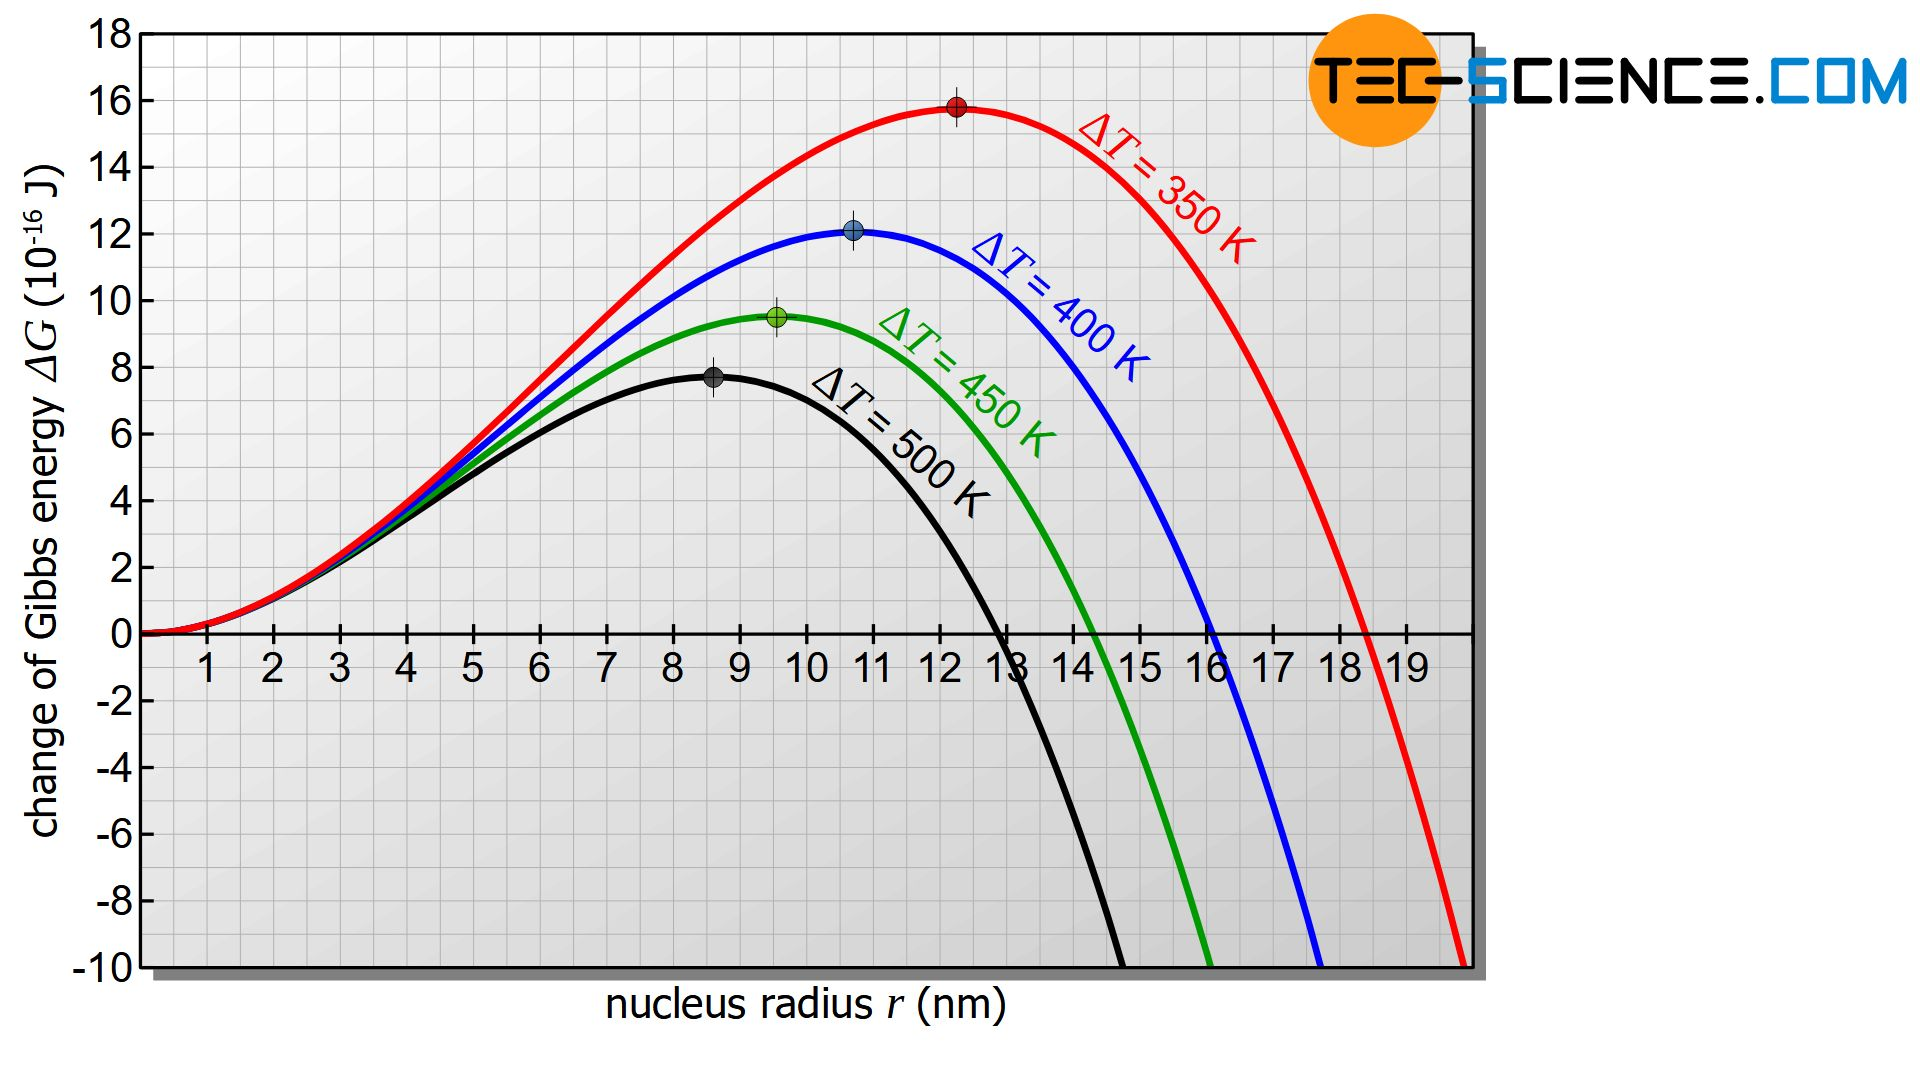 Critical nucleus radius and activation energy for nucleation as a function of supercooling